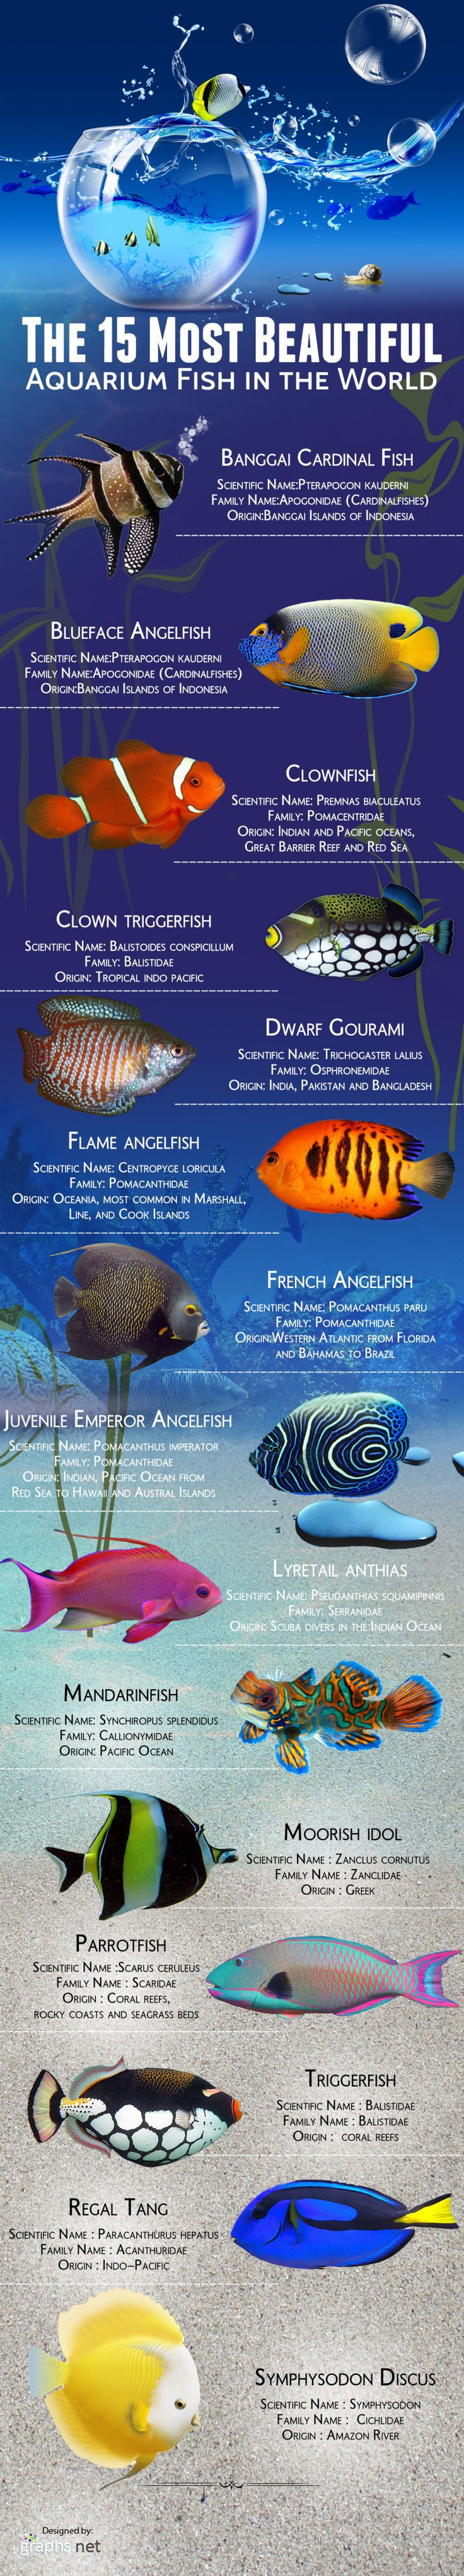 The 15 most beautiful aquarium fish in the world Infographic ~ Salt water tanks.